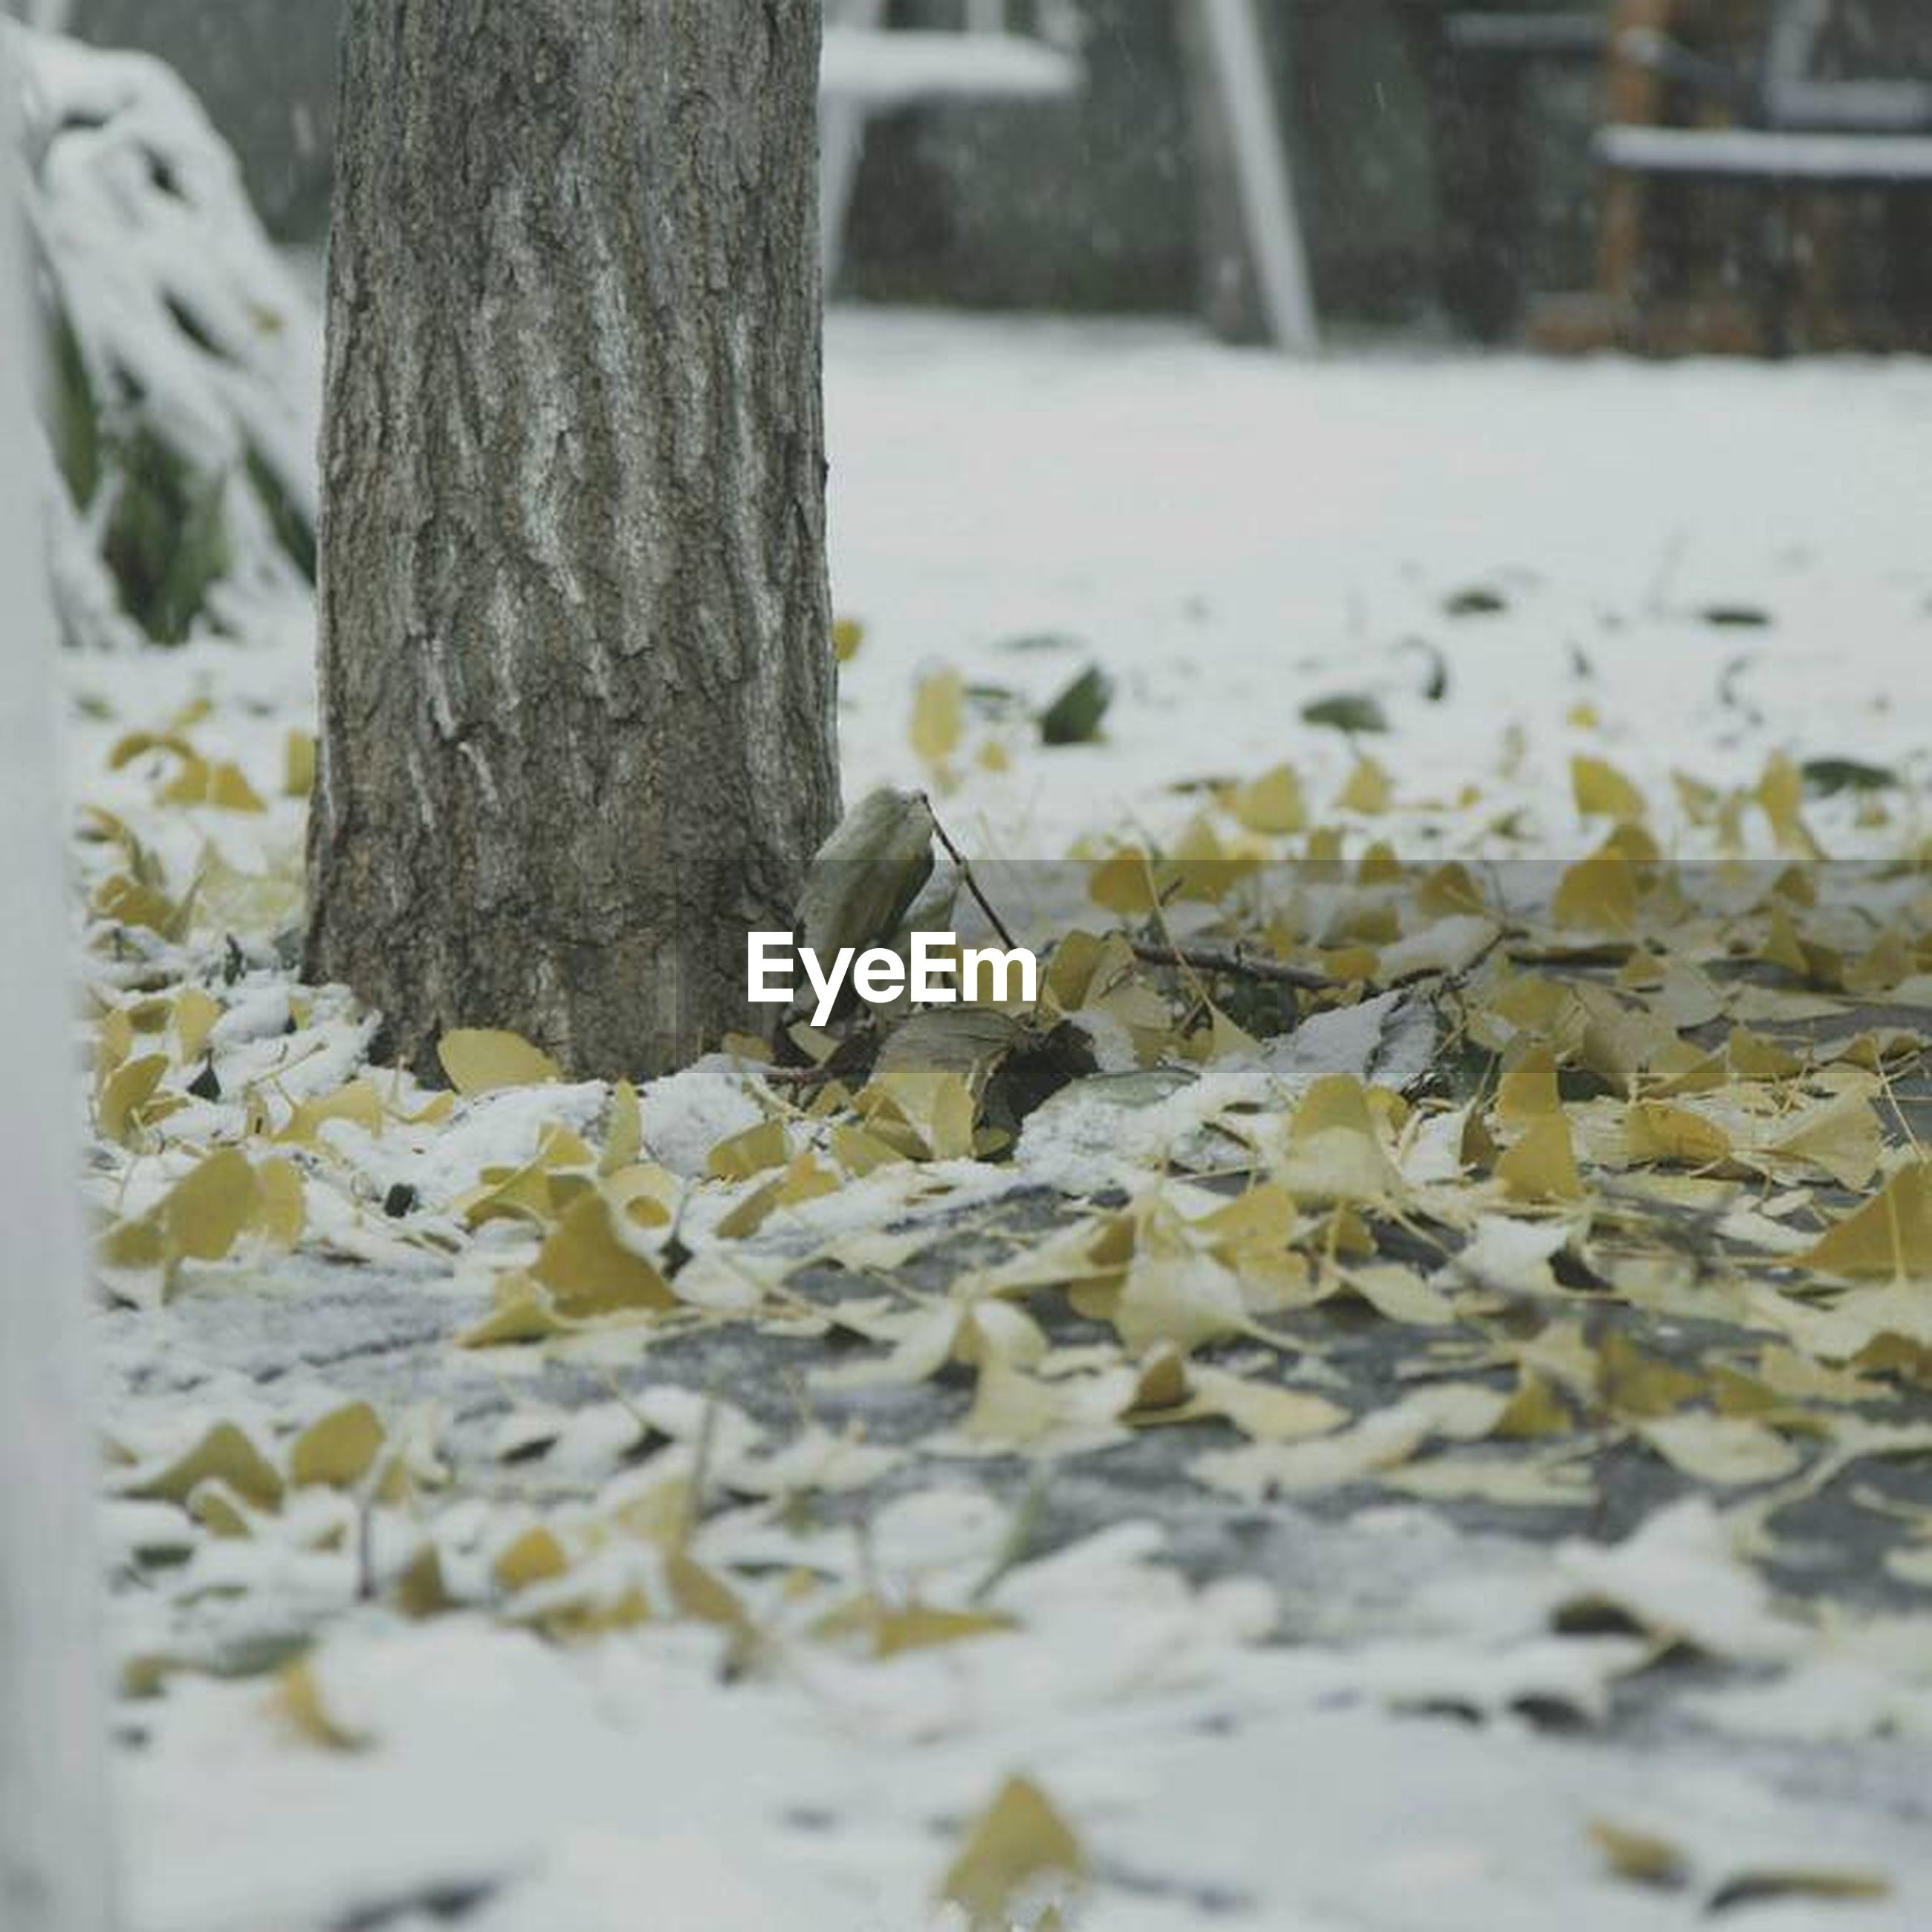 season, winter, snow, cold temperature, focus on foreground, selective focus, close-up, covering, nature, dry, weather, surface level, frozen, day, outdoors, tree trunk, leaf, white color, fallen, covered